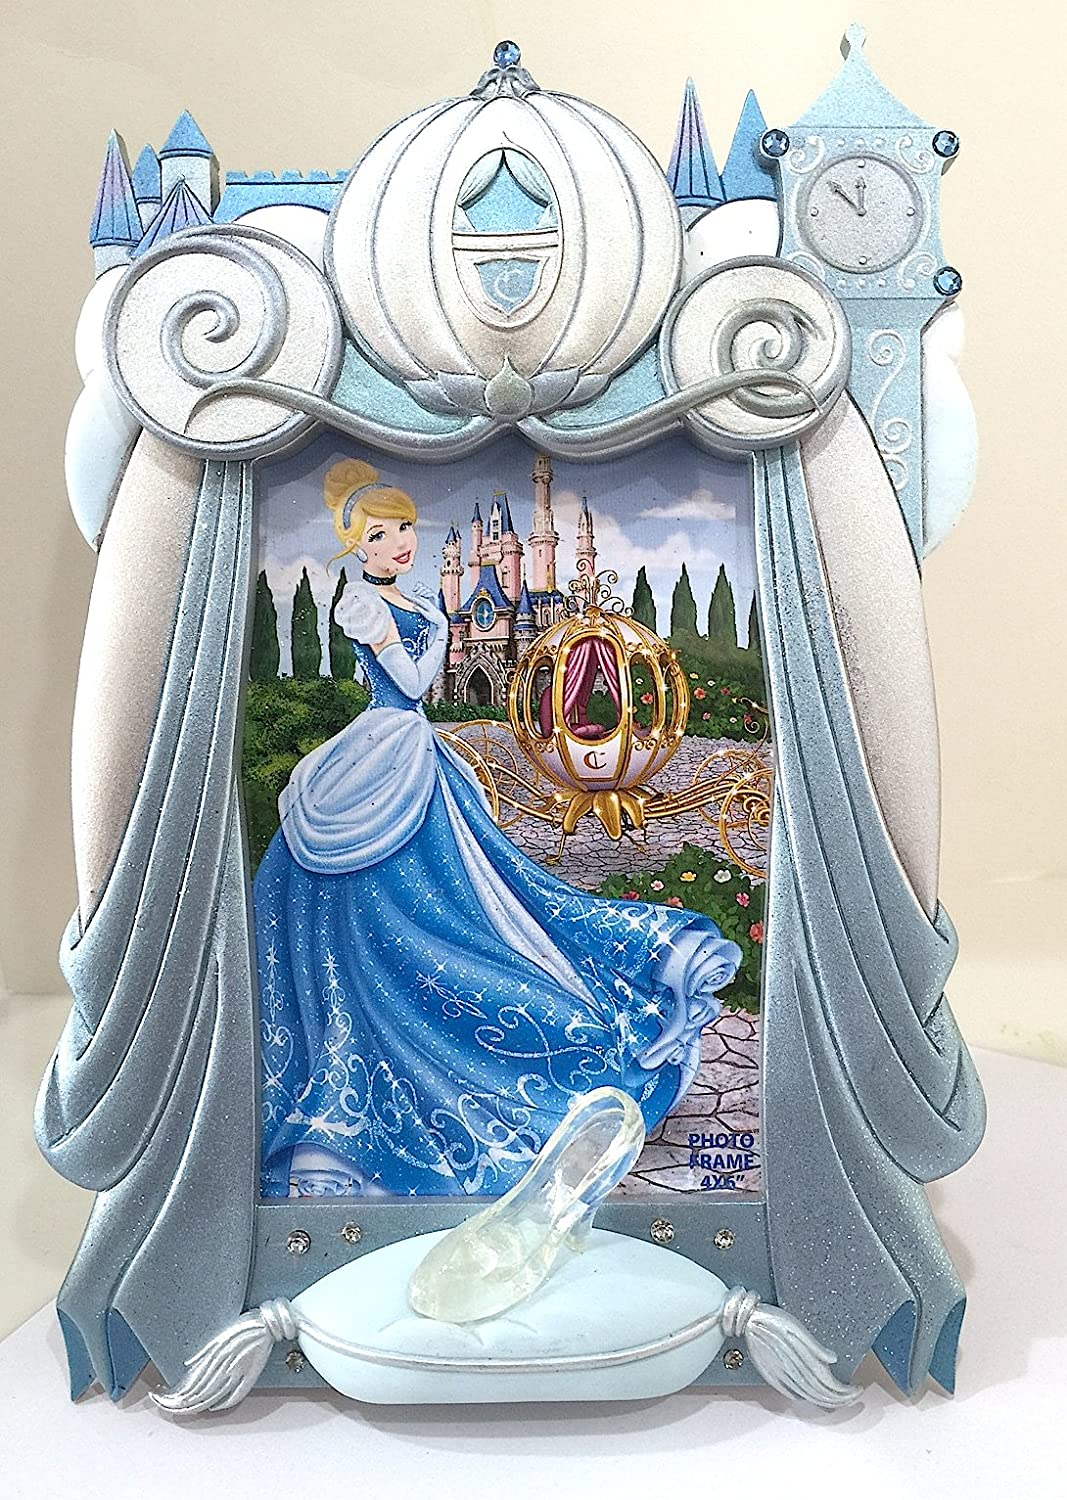 Disney Parks Cinderella Coach Glass Slipper 4 x 6 Photo Frame NEW